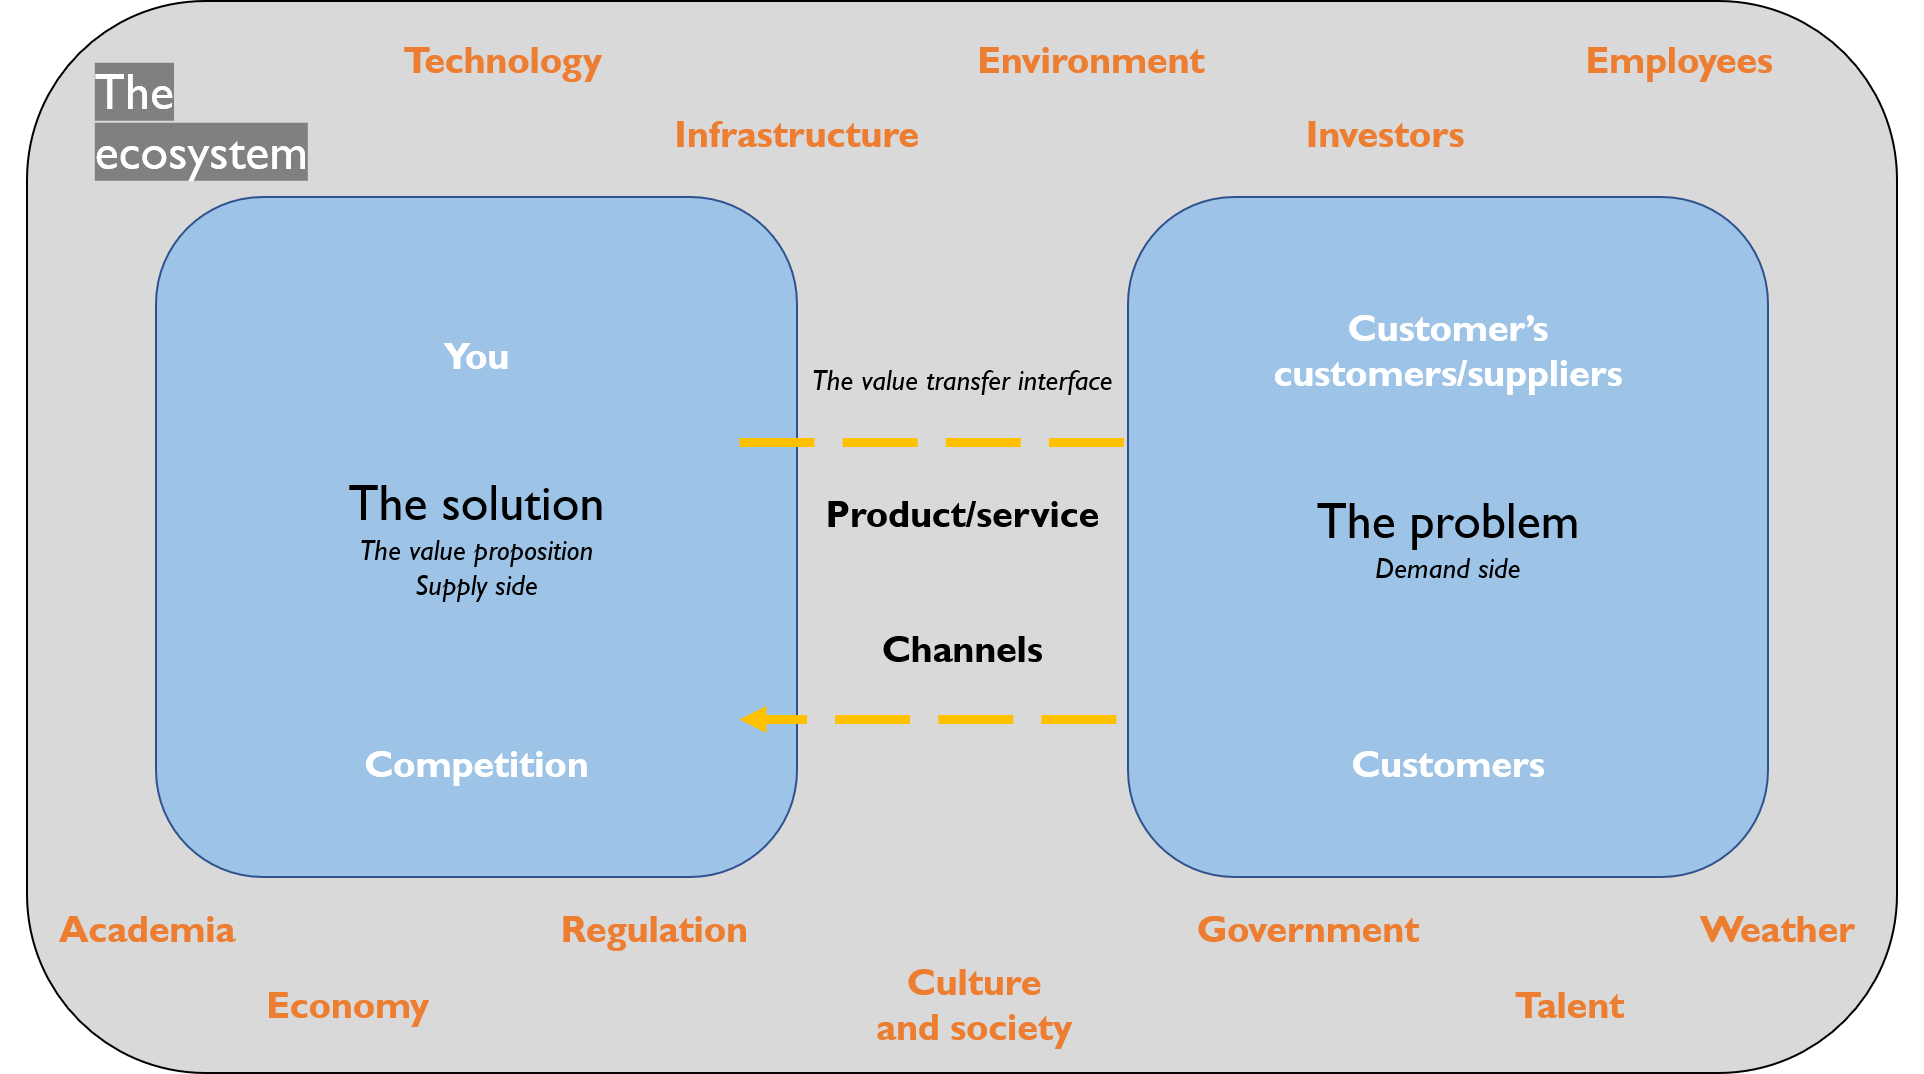 The ecosystem landscape of potentially influential stakeholders other than customers